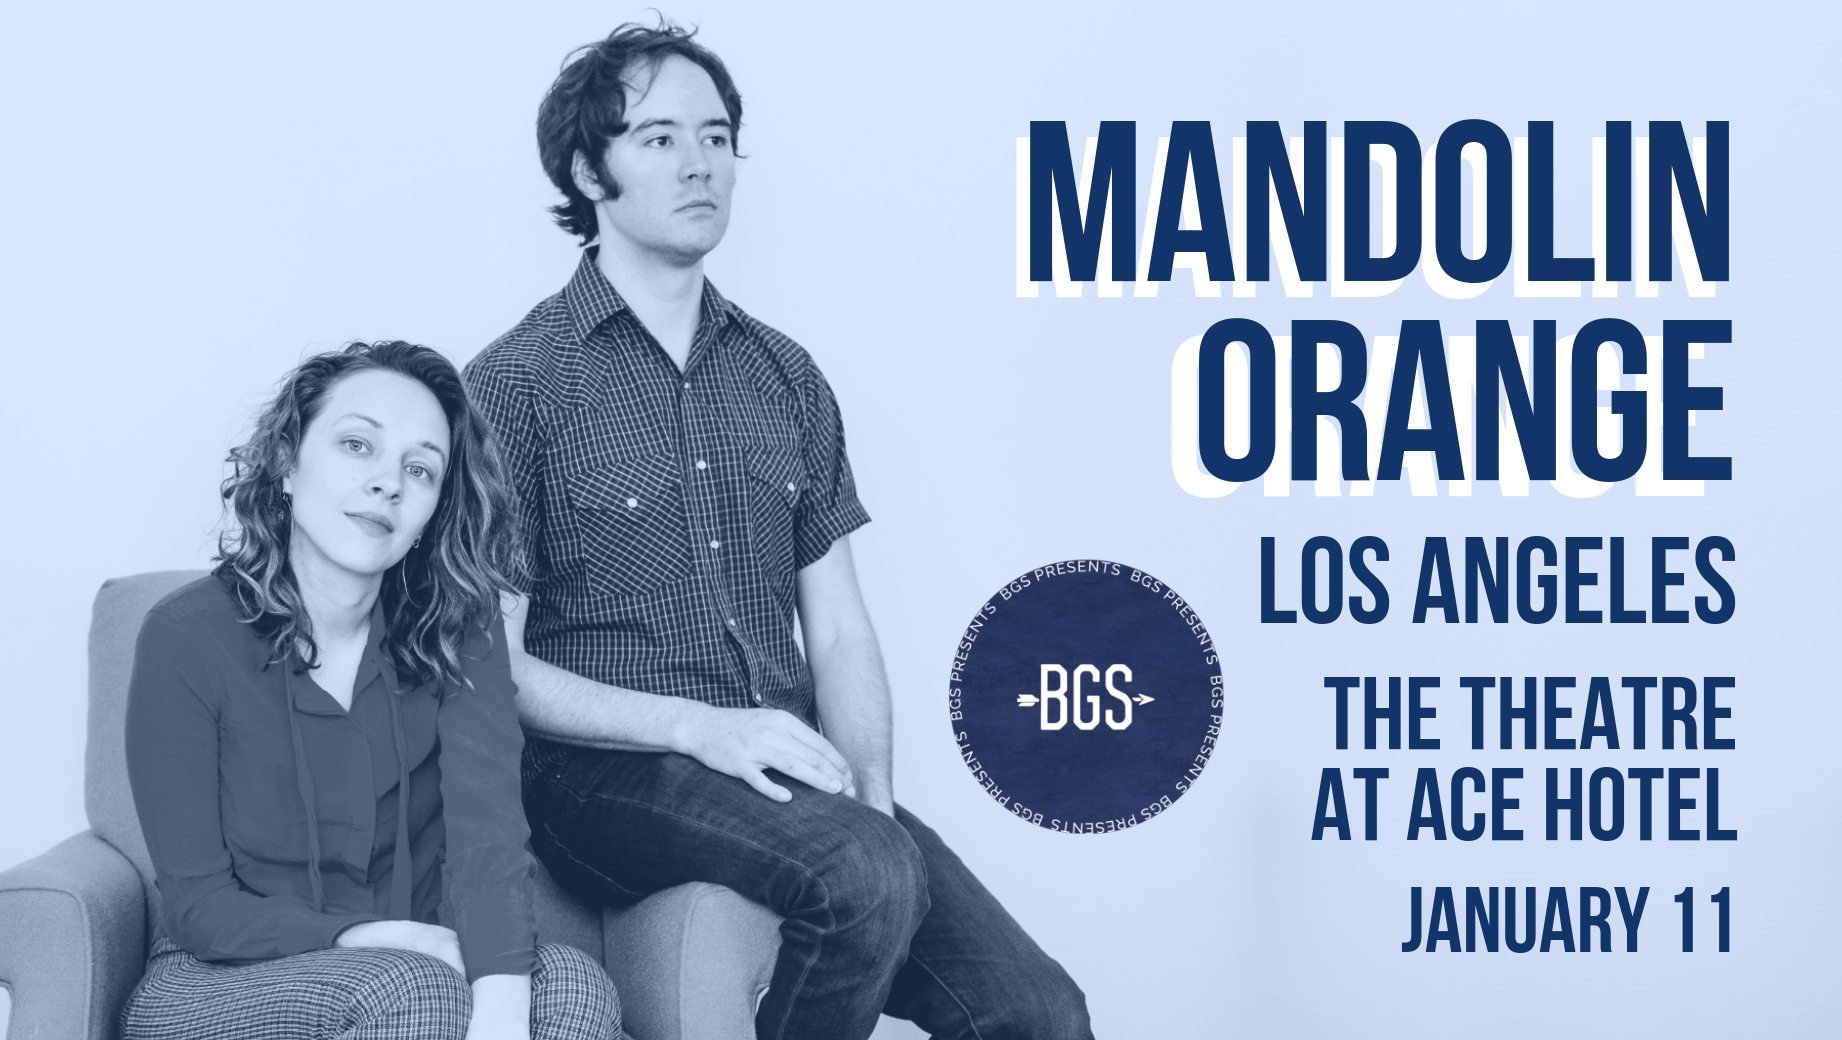 GIVEAWAY: Enter to Win Tickets to Mandolin Orange @ The Theatre at Ace Hotel (LA) 1/11